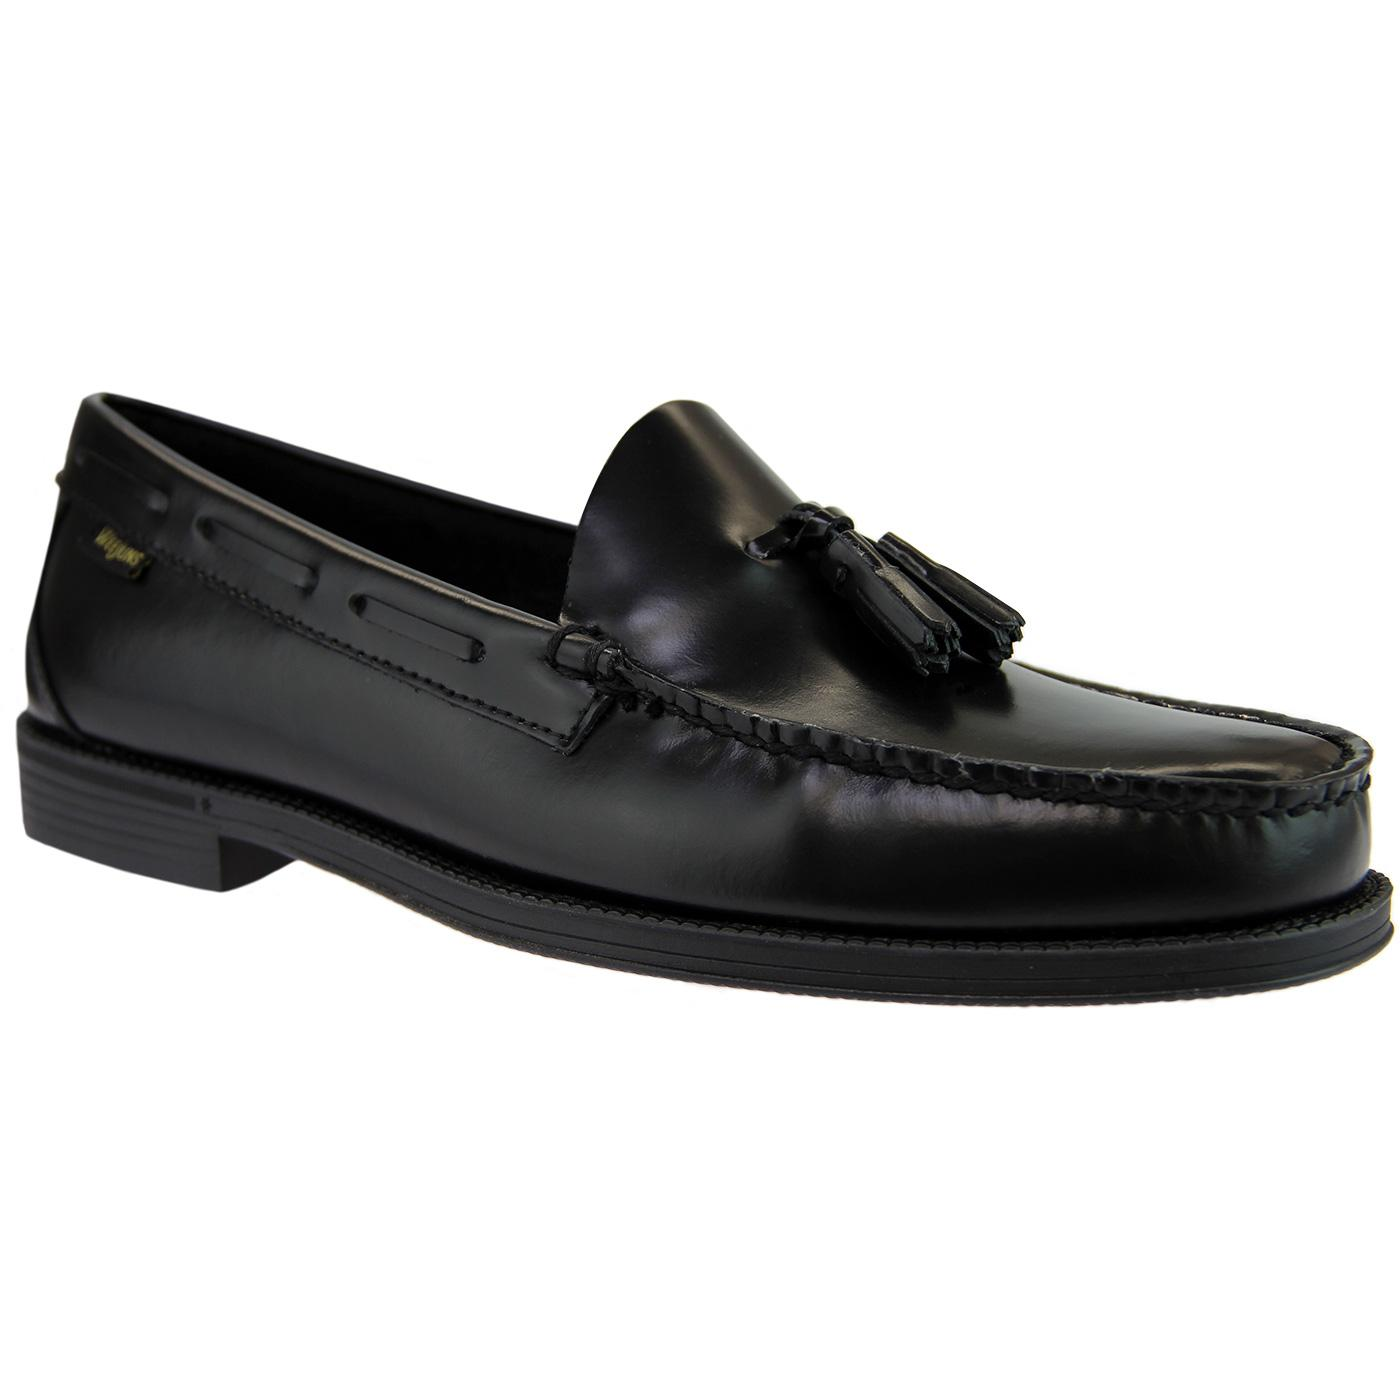 Larkin Easy Weejuns Tassel Loafer in Black